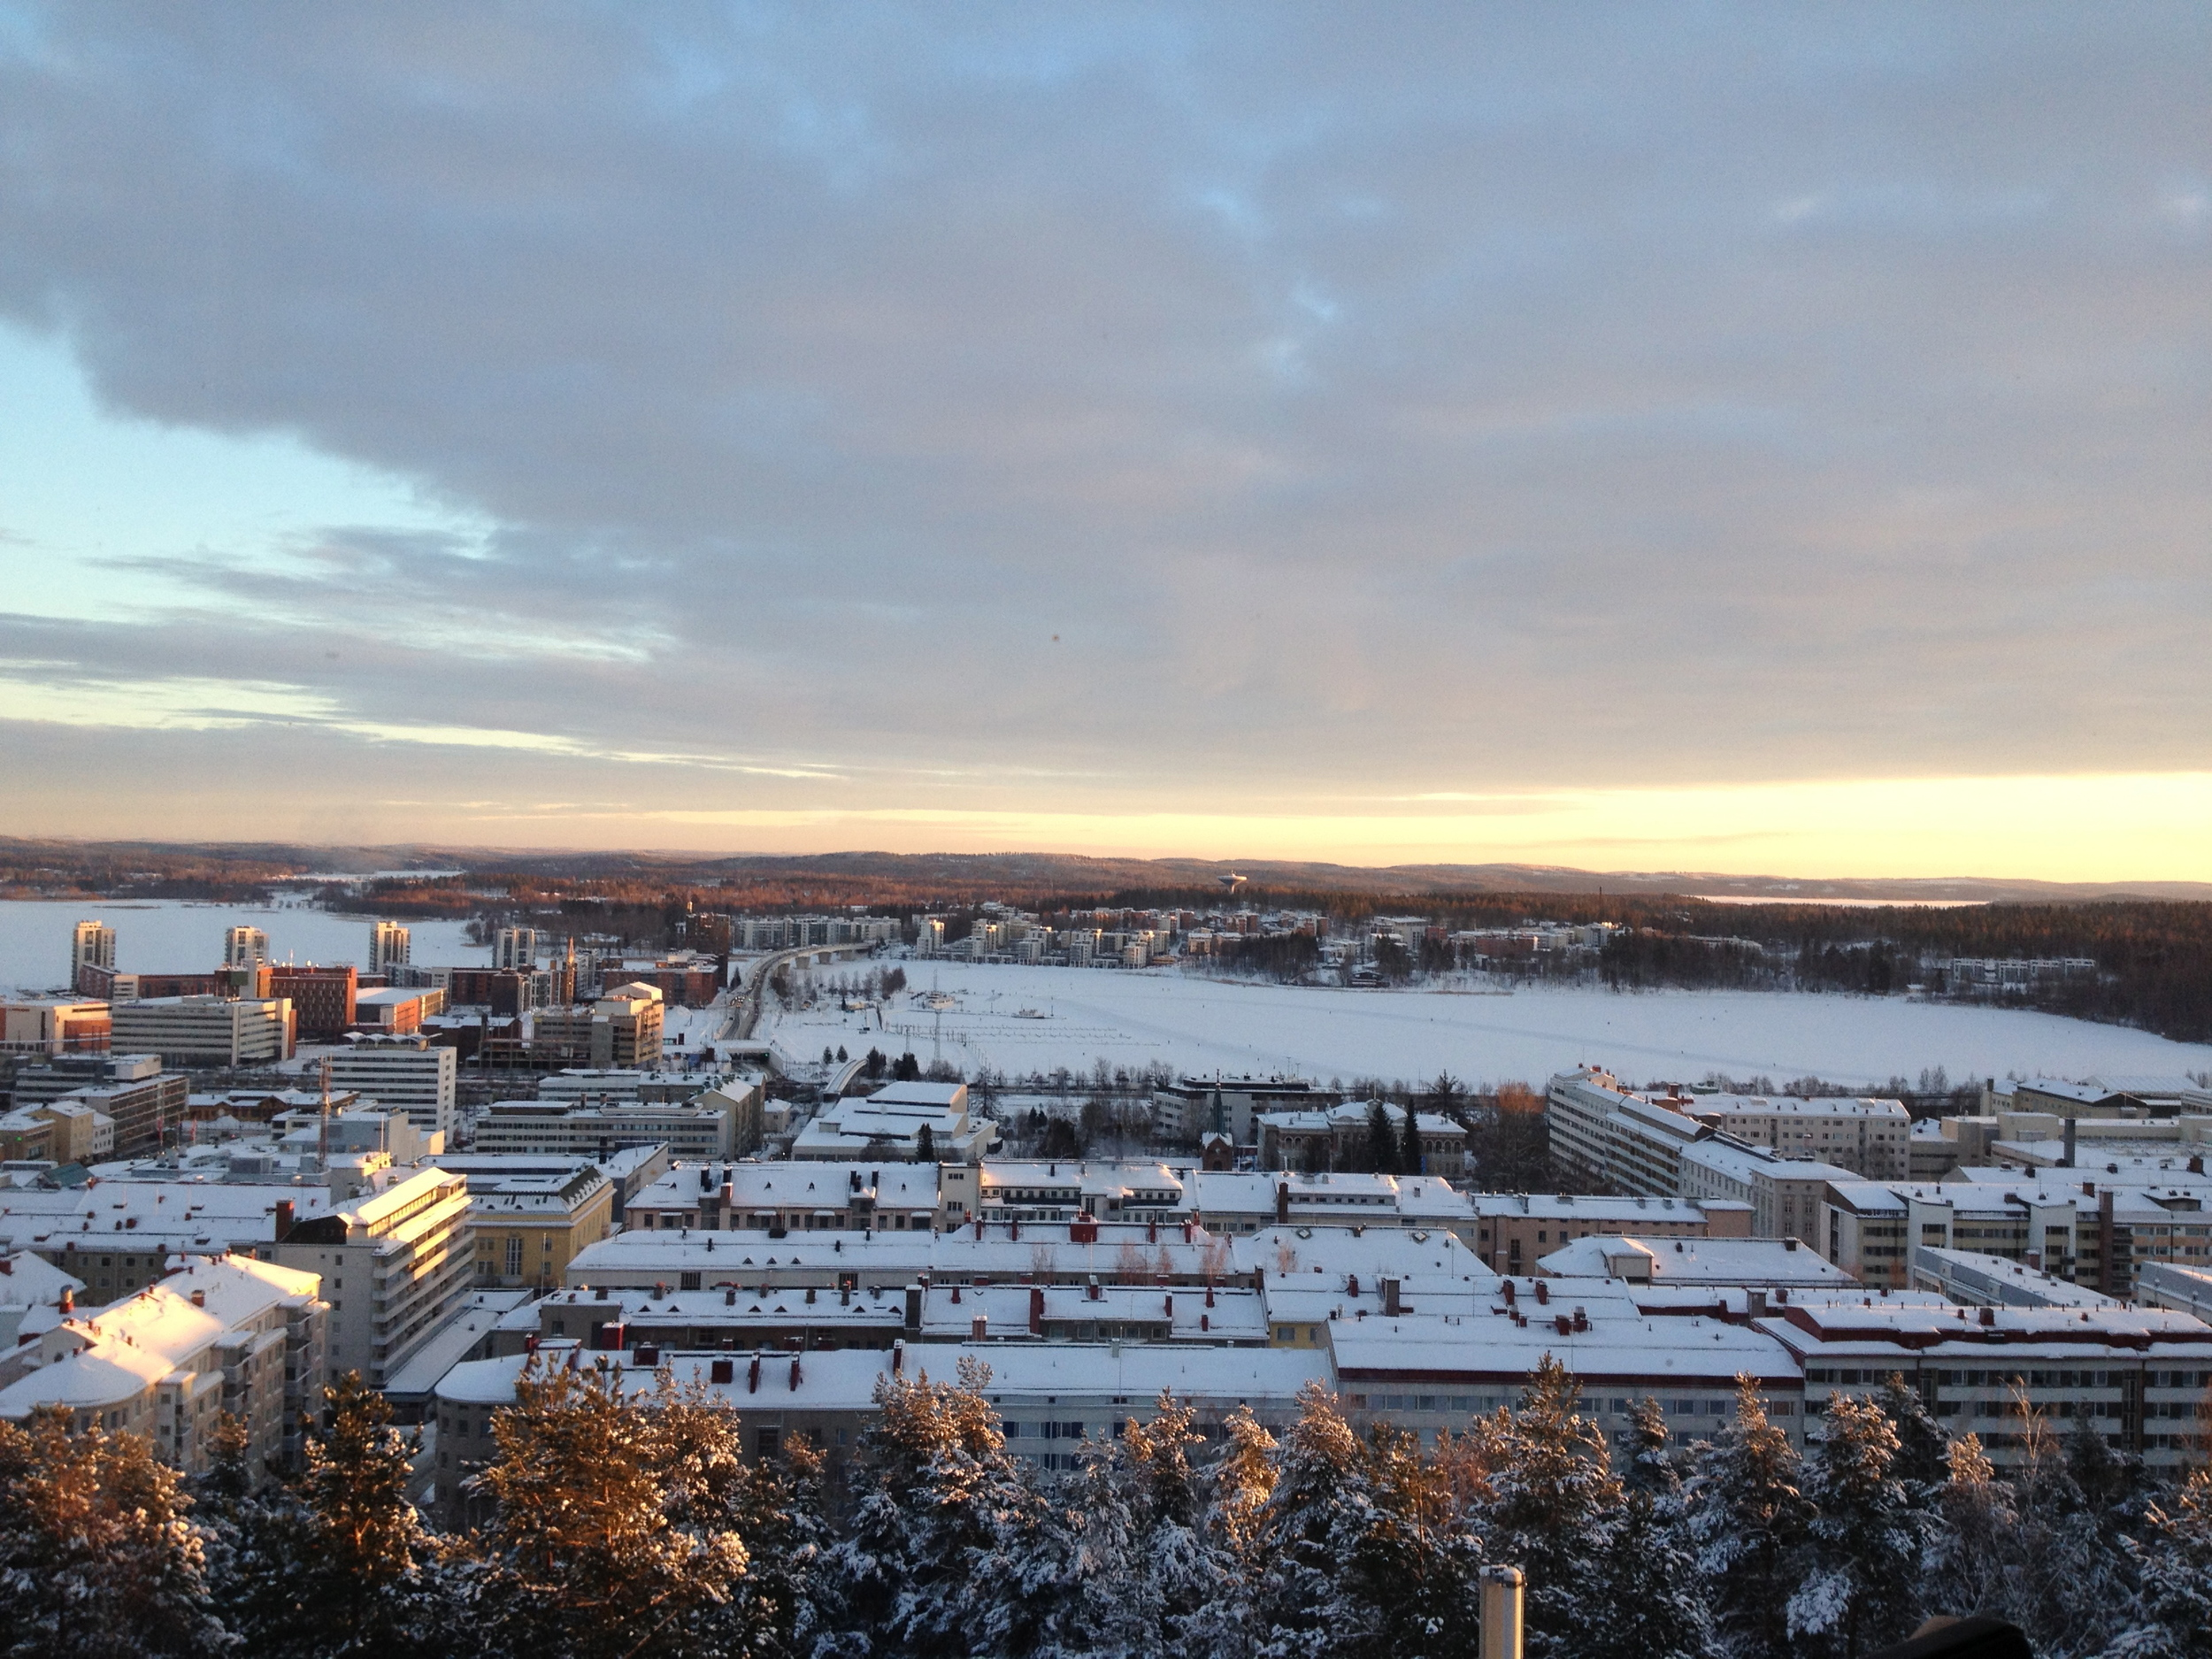 JYVÄSKYLÄ IN THE WINTER